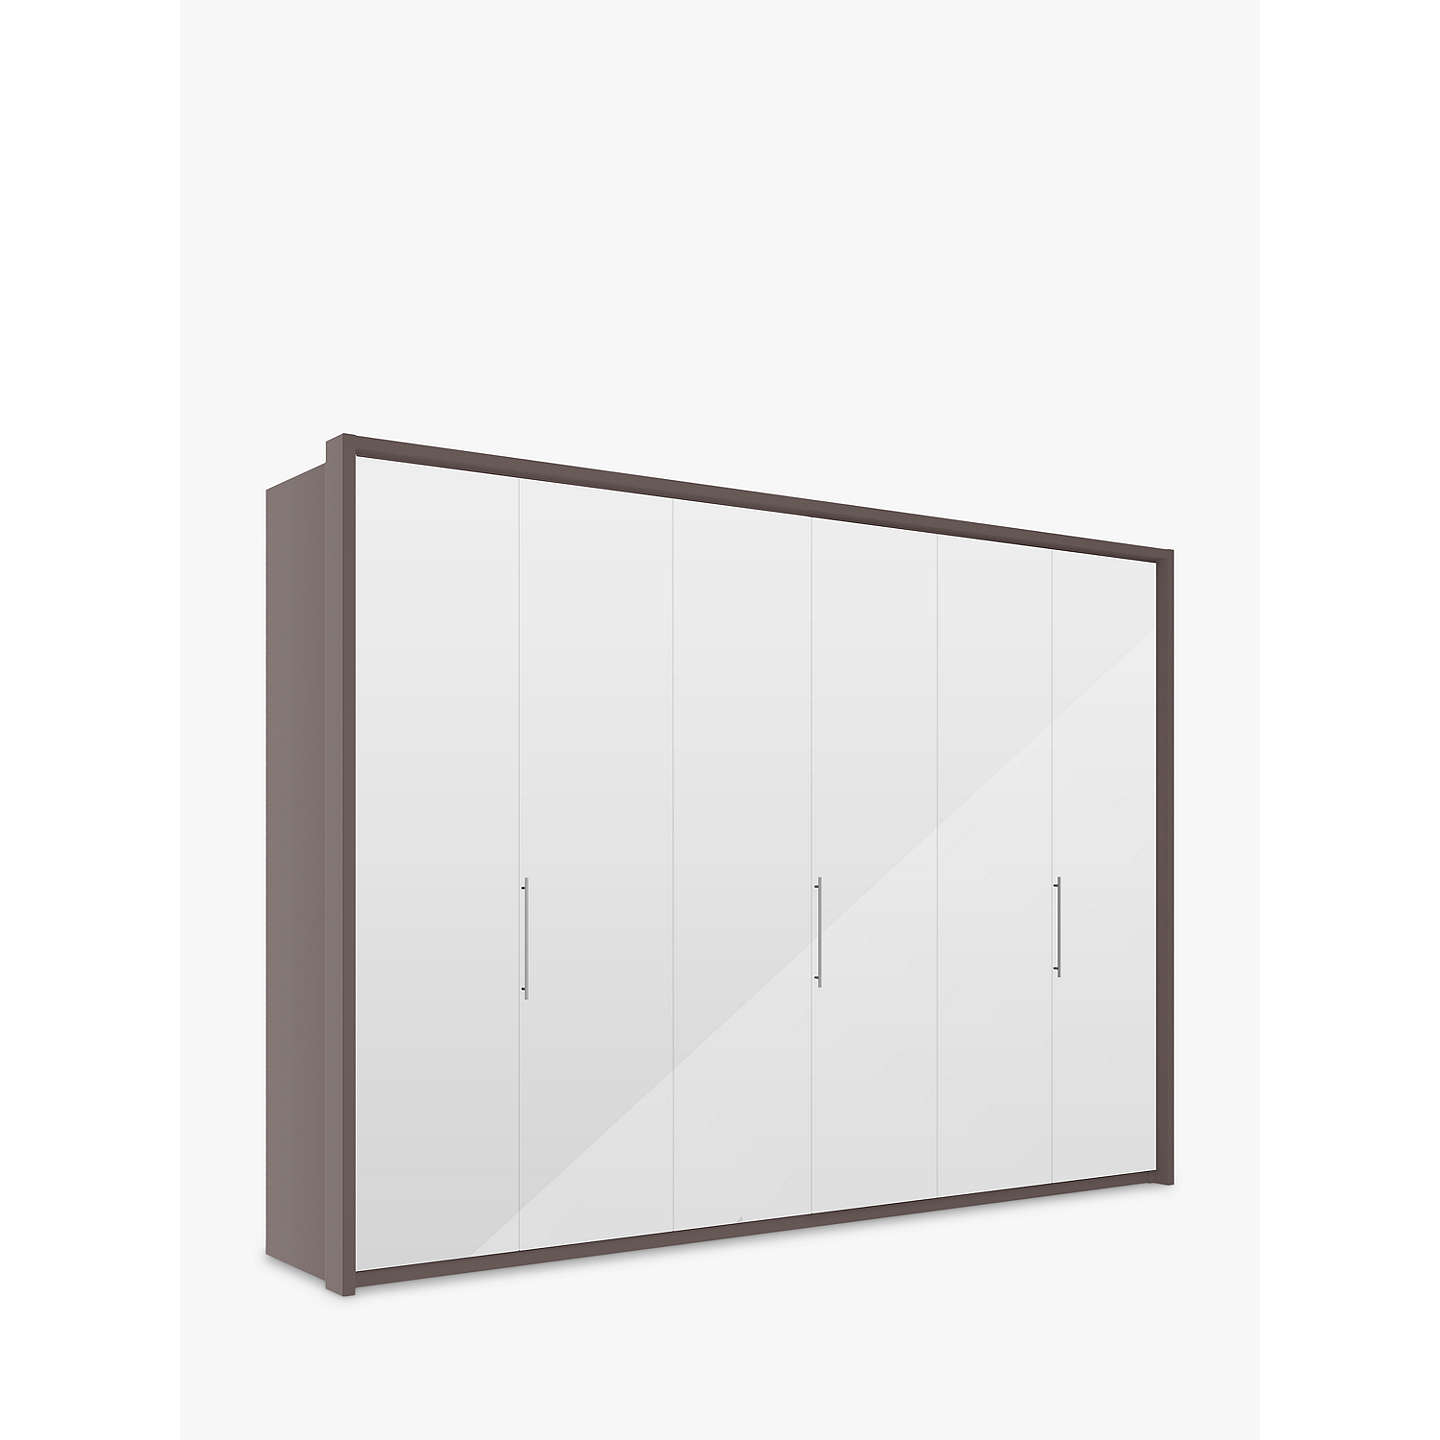 john lewis girona 300cm wardrobe with glass or mirrored. Black Bedroom Furniture Sets. Home Design Ideas